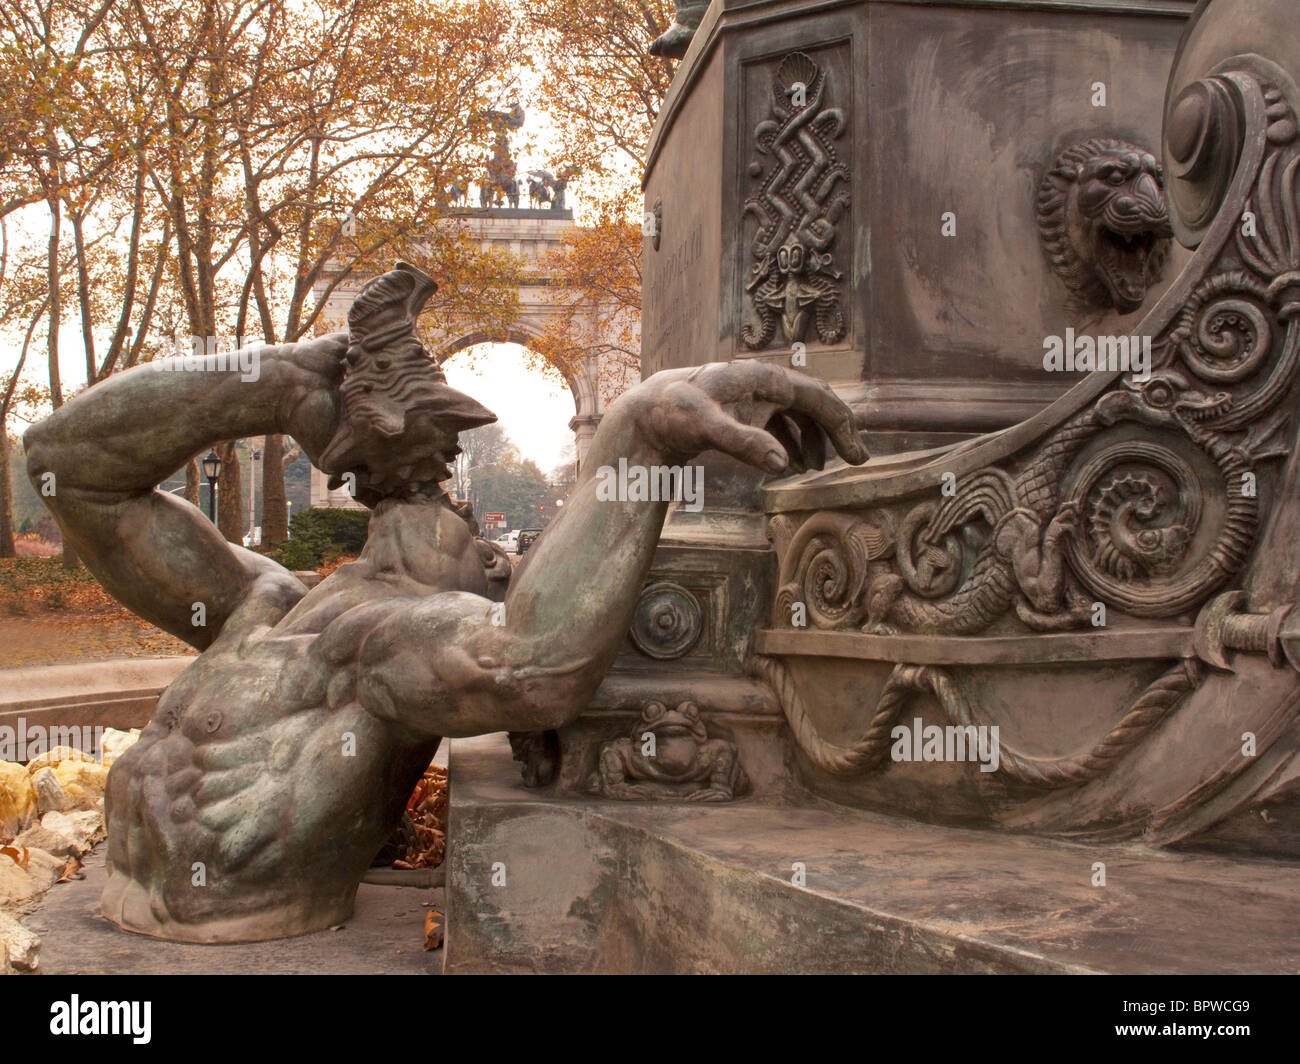 Bailey Fountain Brooklyn New York statue with close up of King Neptune  and fish frogs Grand Army Arch in background - Stock Image